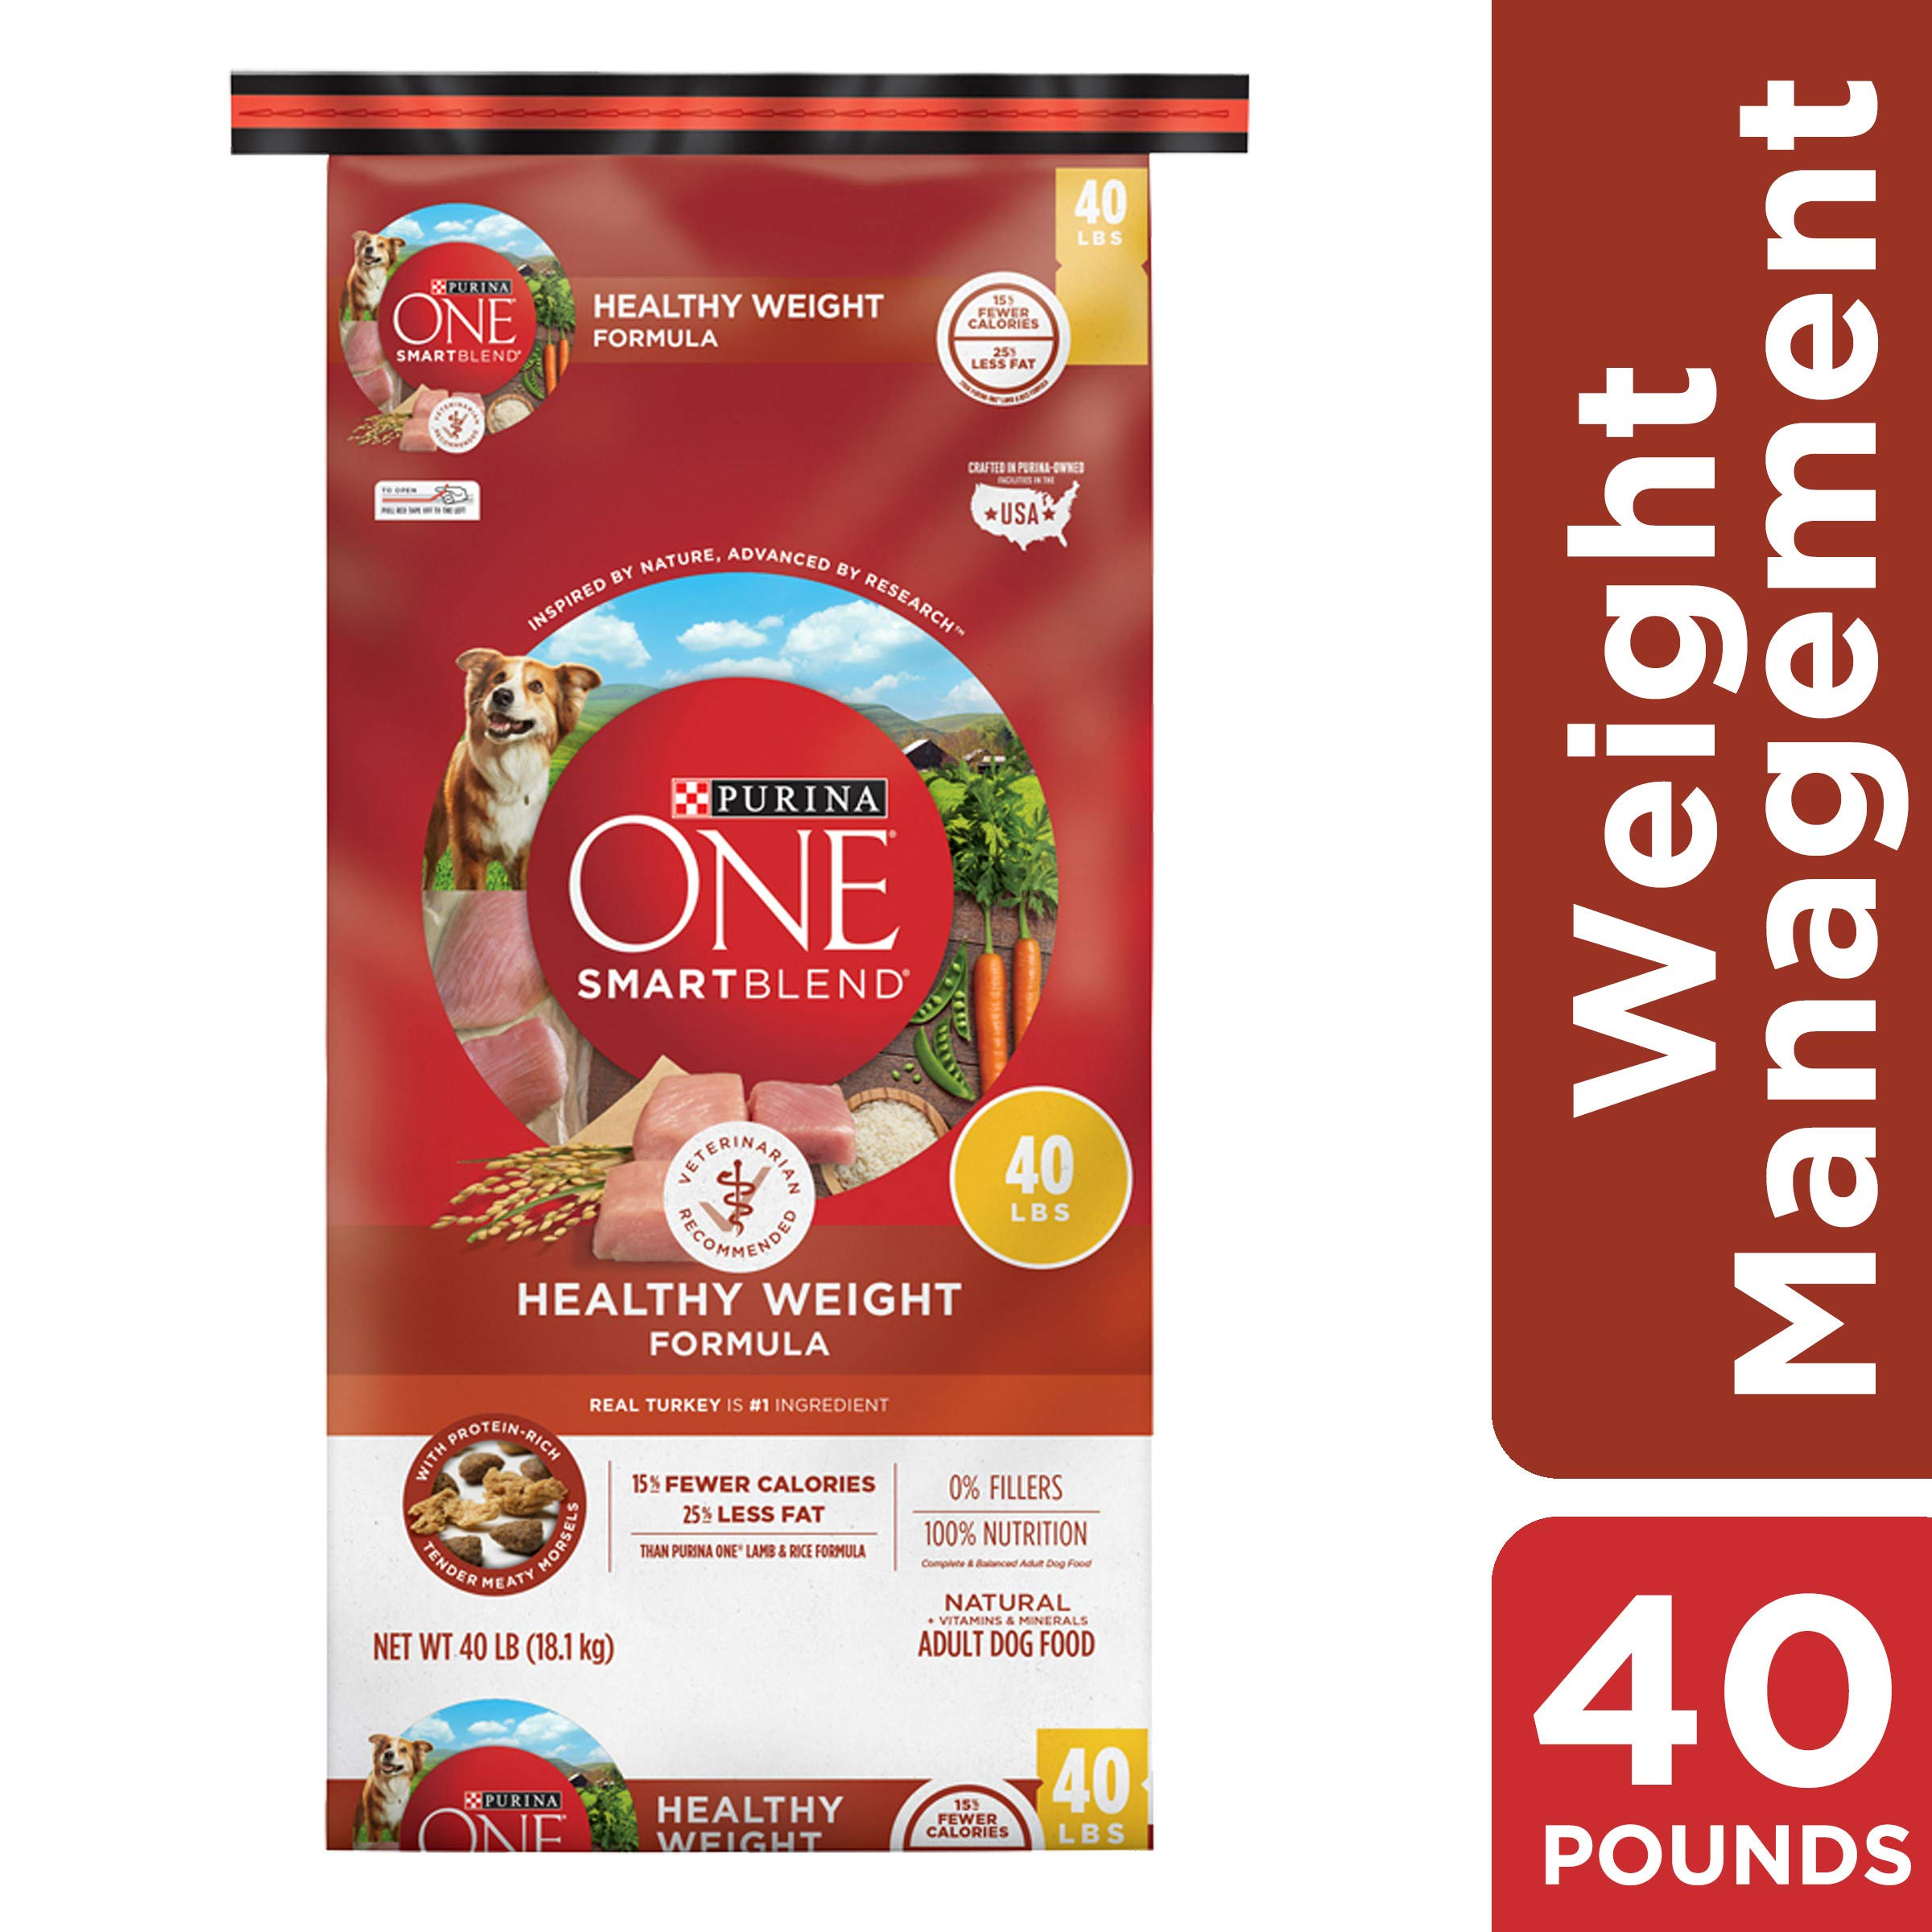 Purina ONE Weight Management, Natural Dry Dog Food, SmartBlend Healthy Weight Formula - 40 lb. Bag by Purina ONE